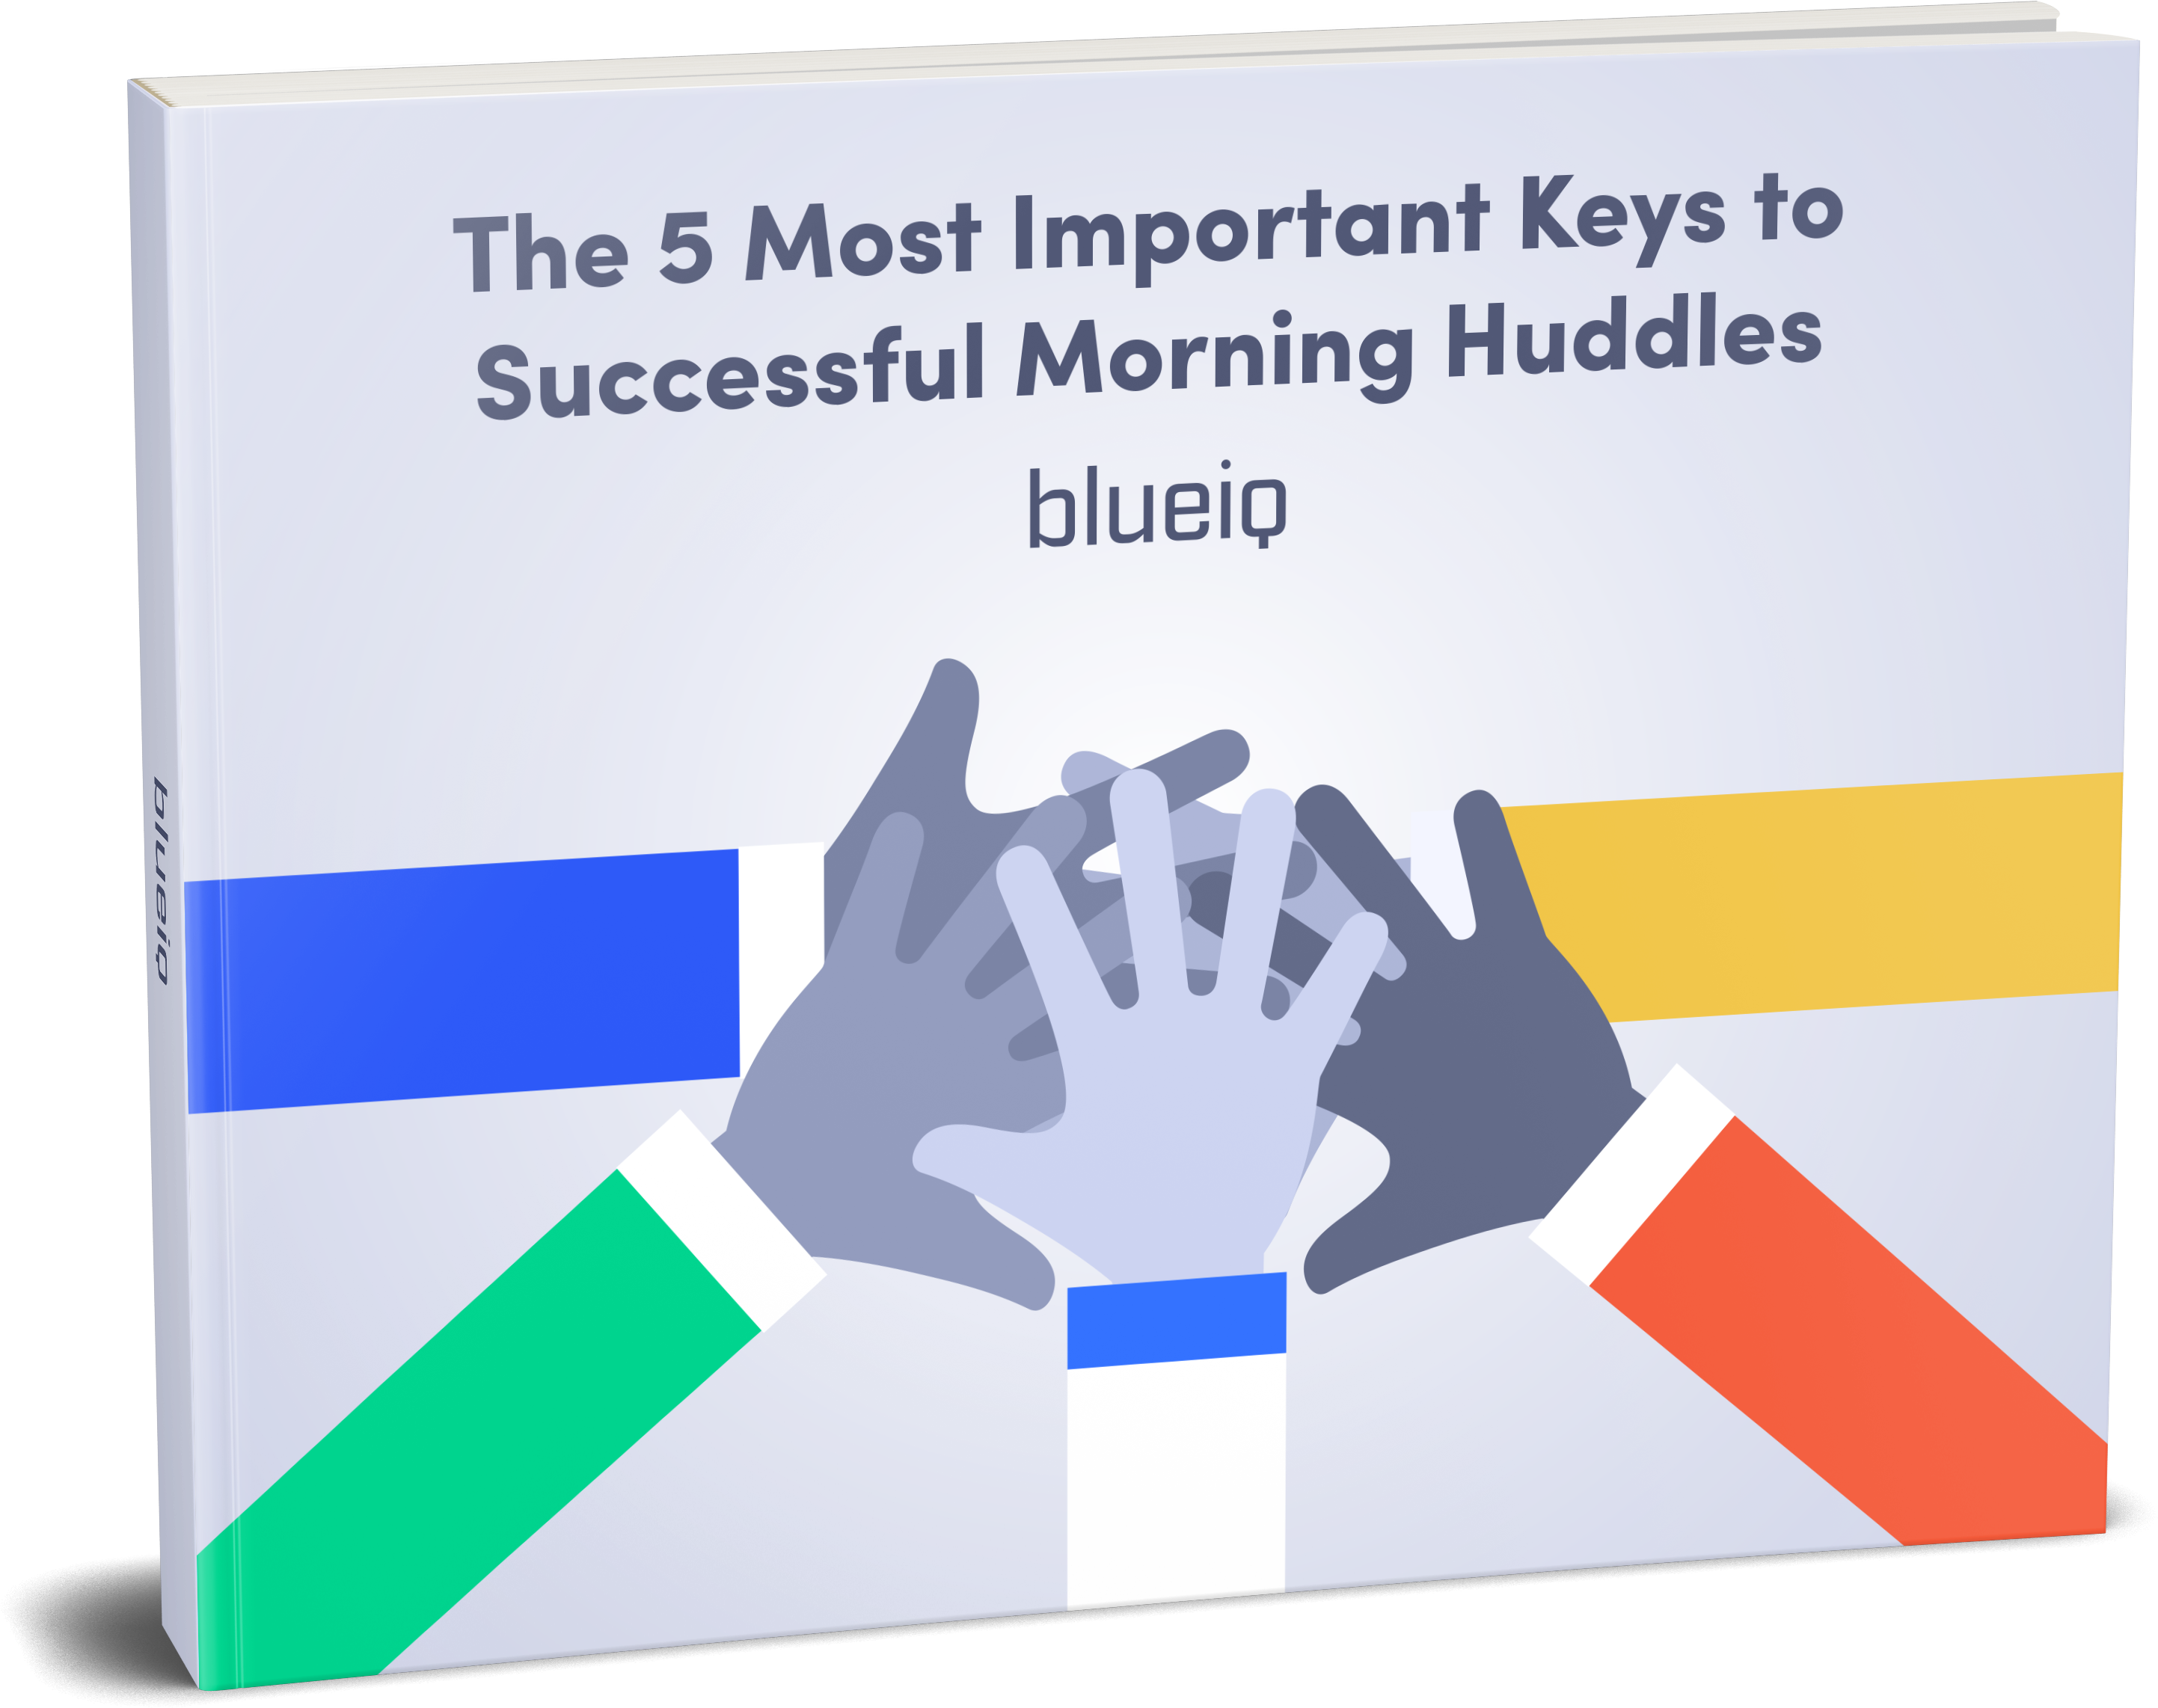 The 5 Most Important Keys to Successful Morning Huddles